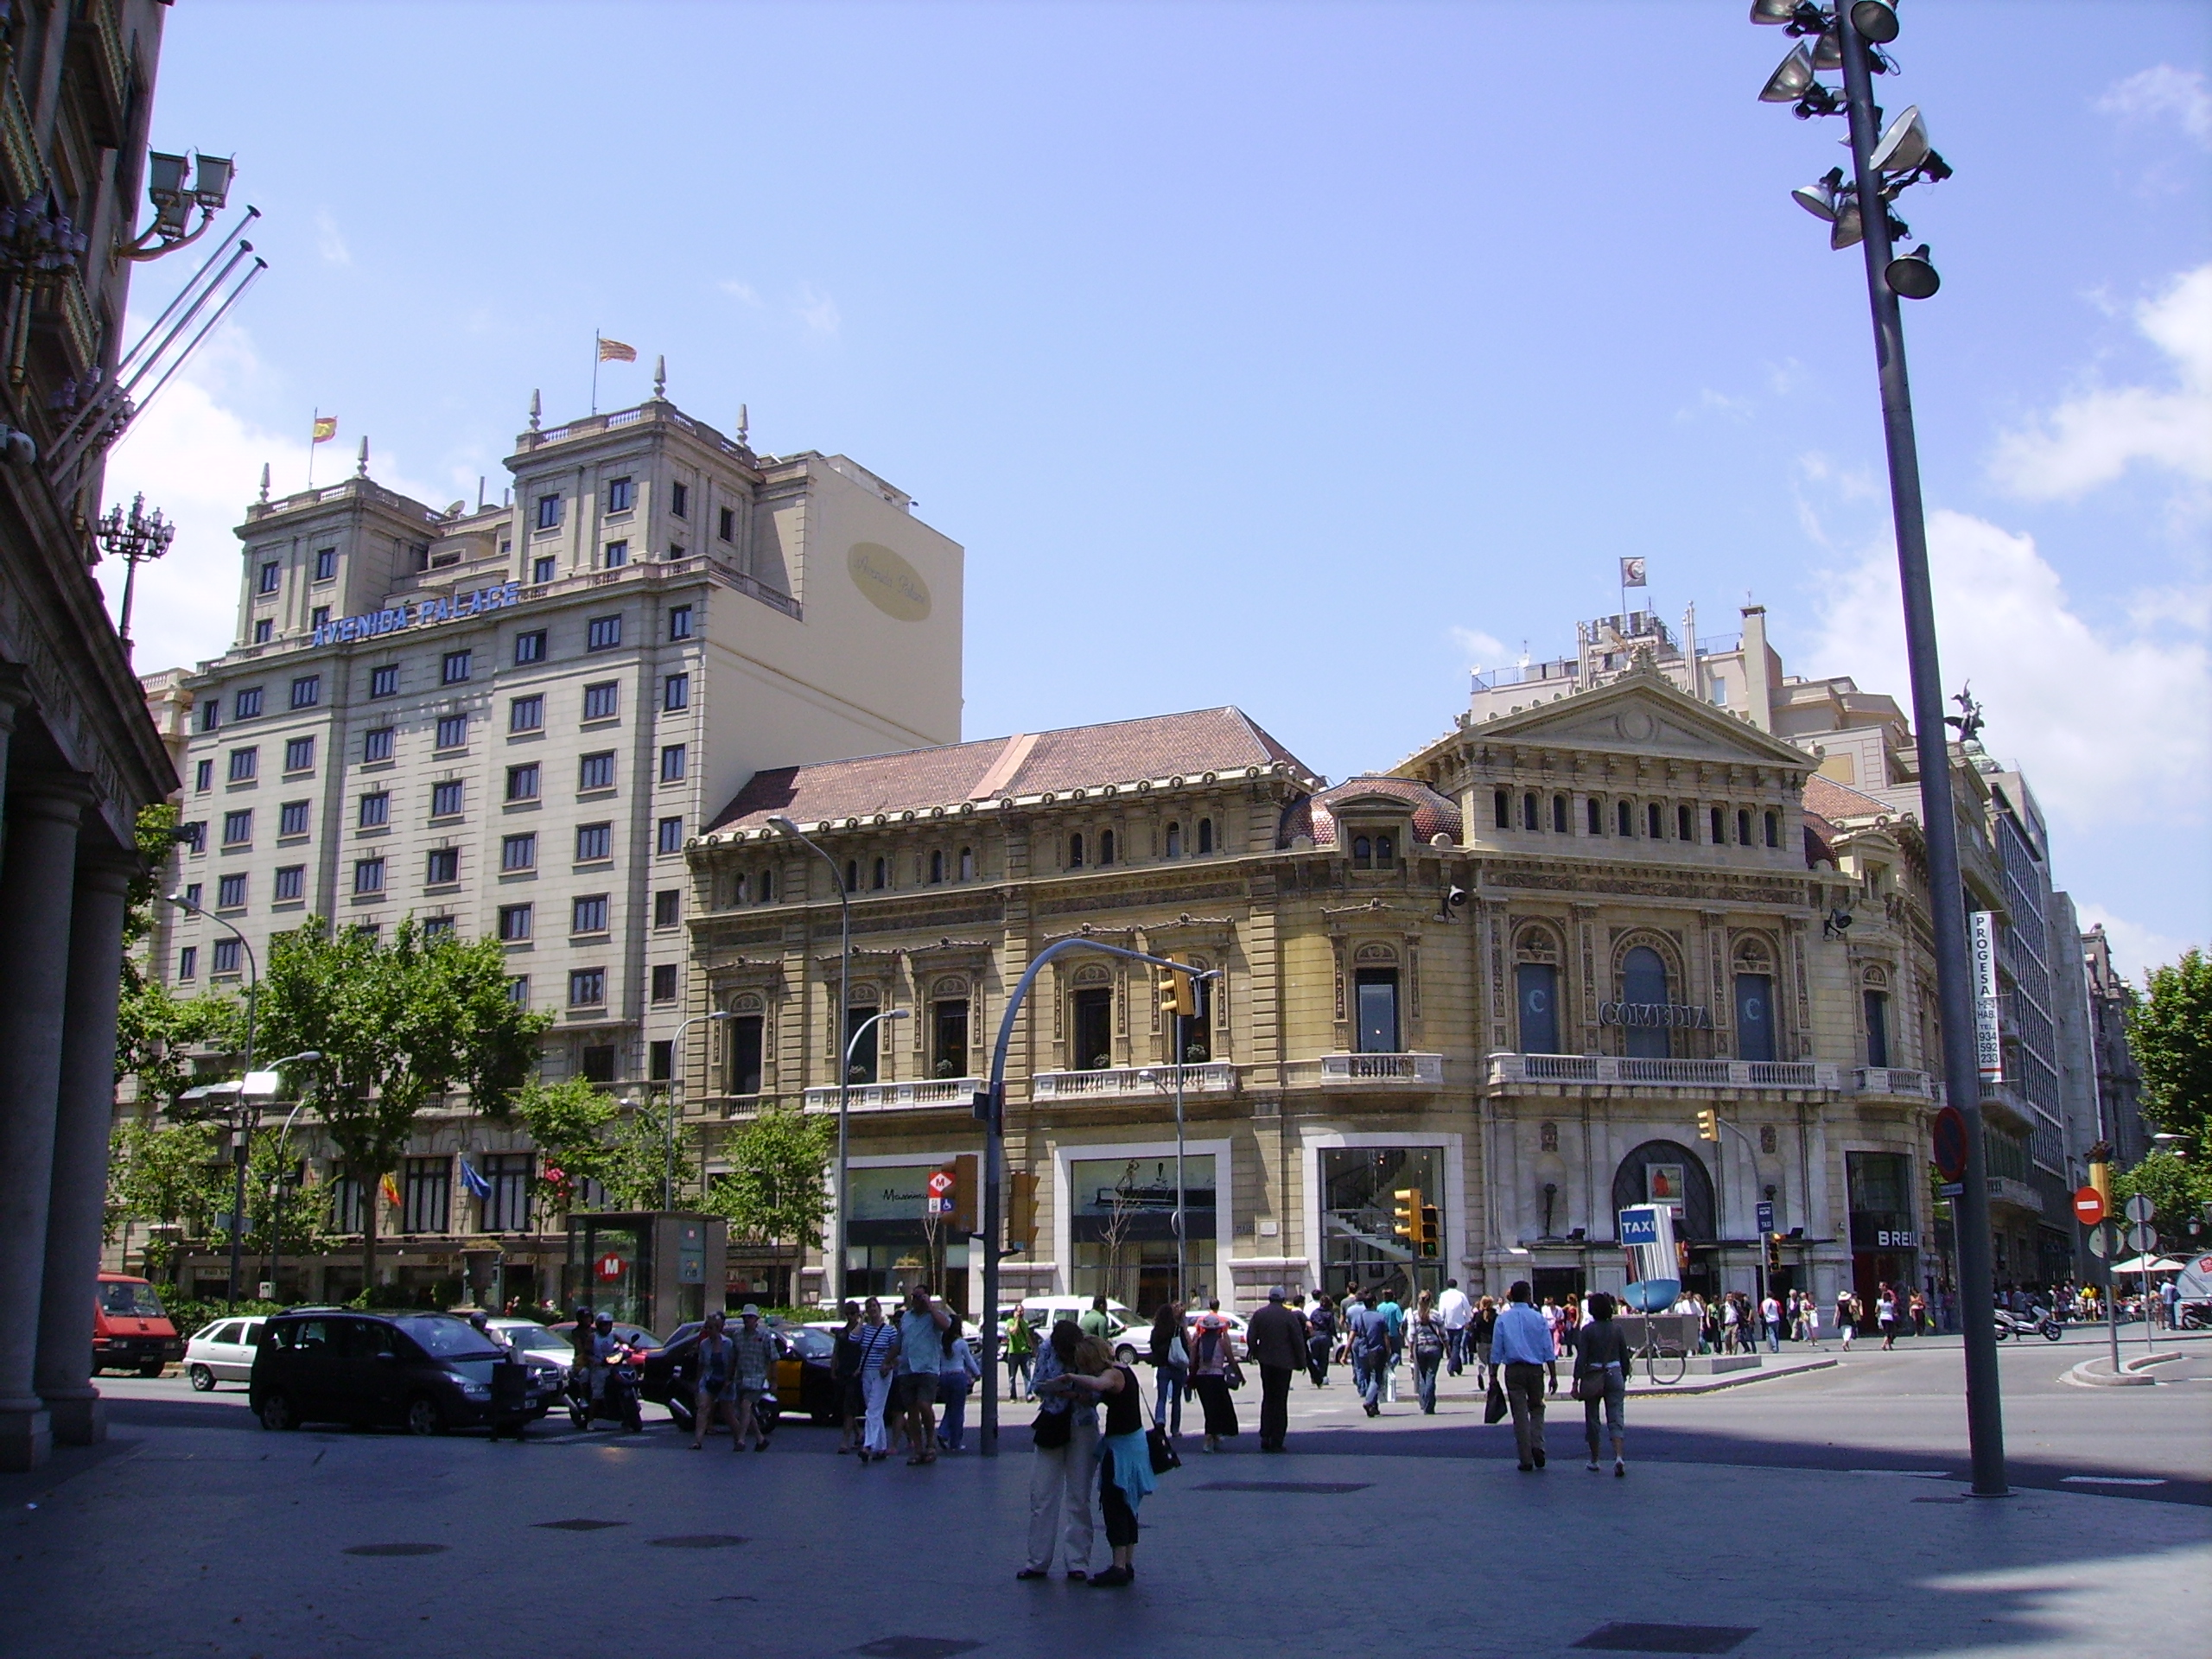 Hotels in paseo de gracia barcelona hotel paseo de gracia for Hotel gracia barcelona